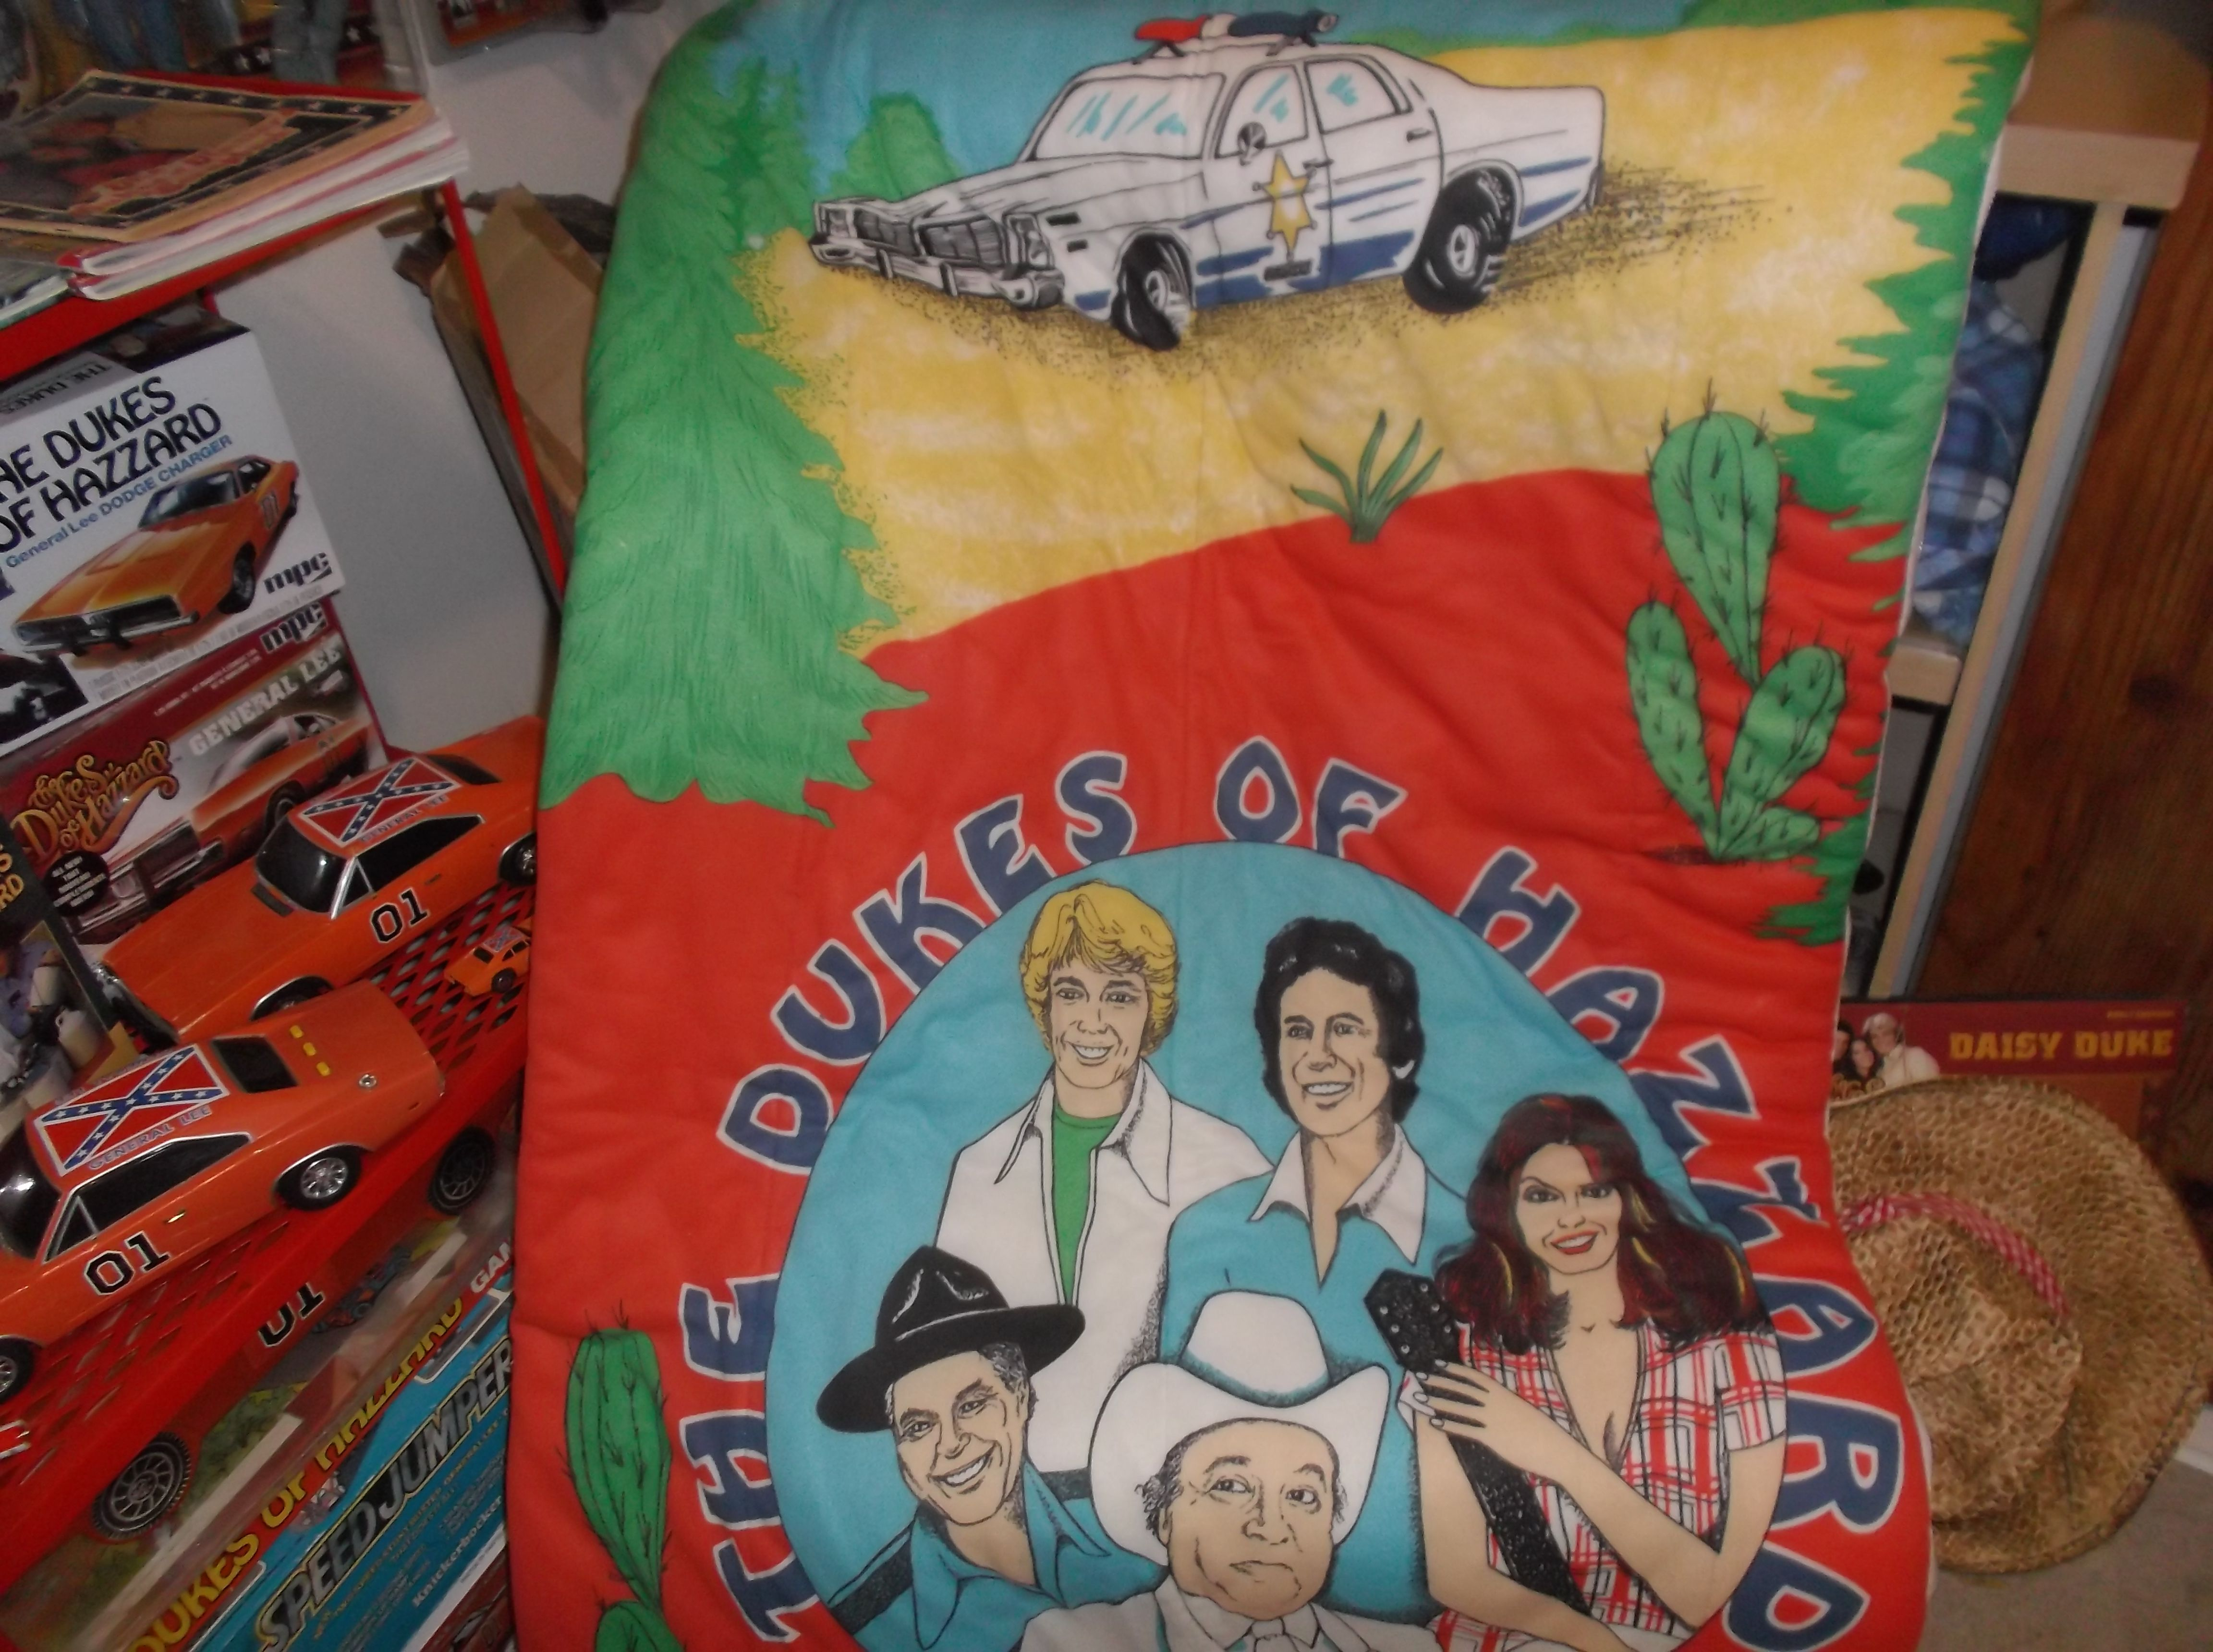 Dukes of Hazzard sleeping bag (Part of my collection)